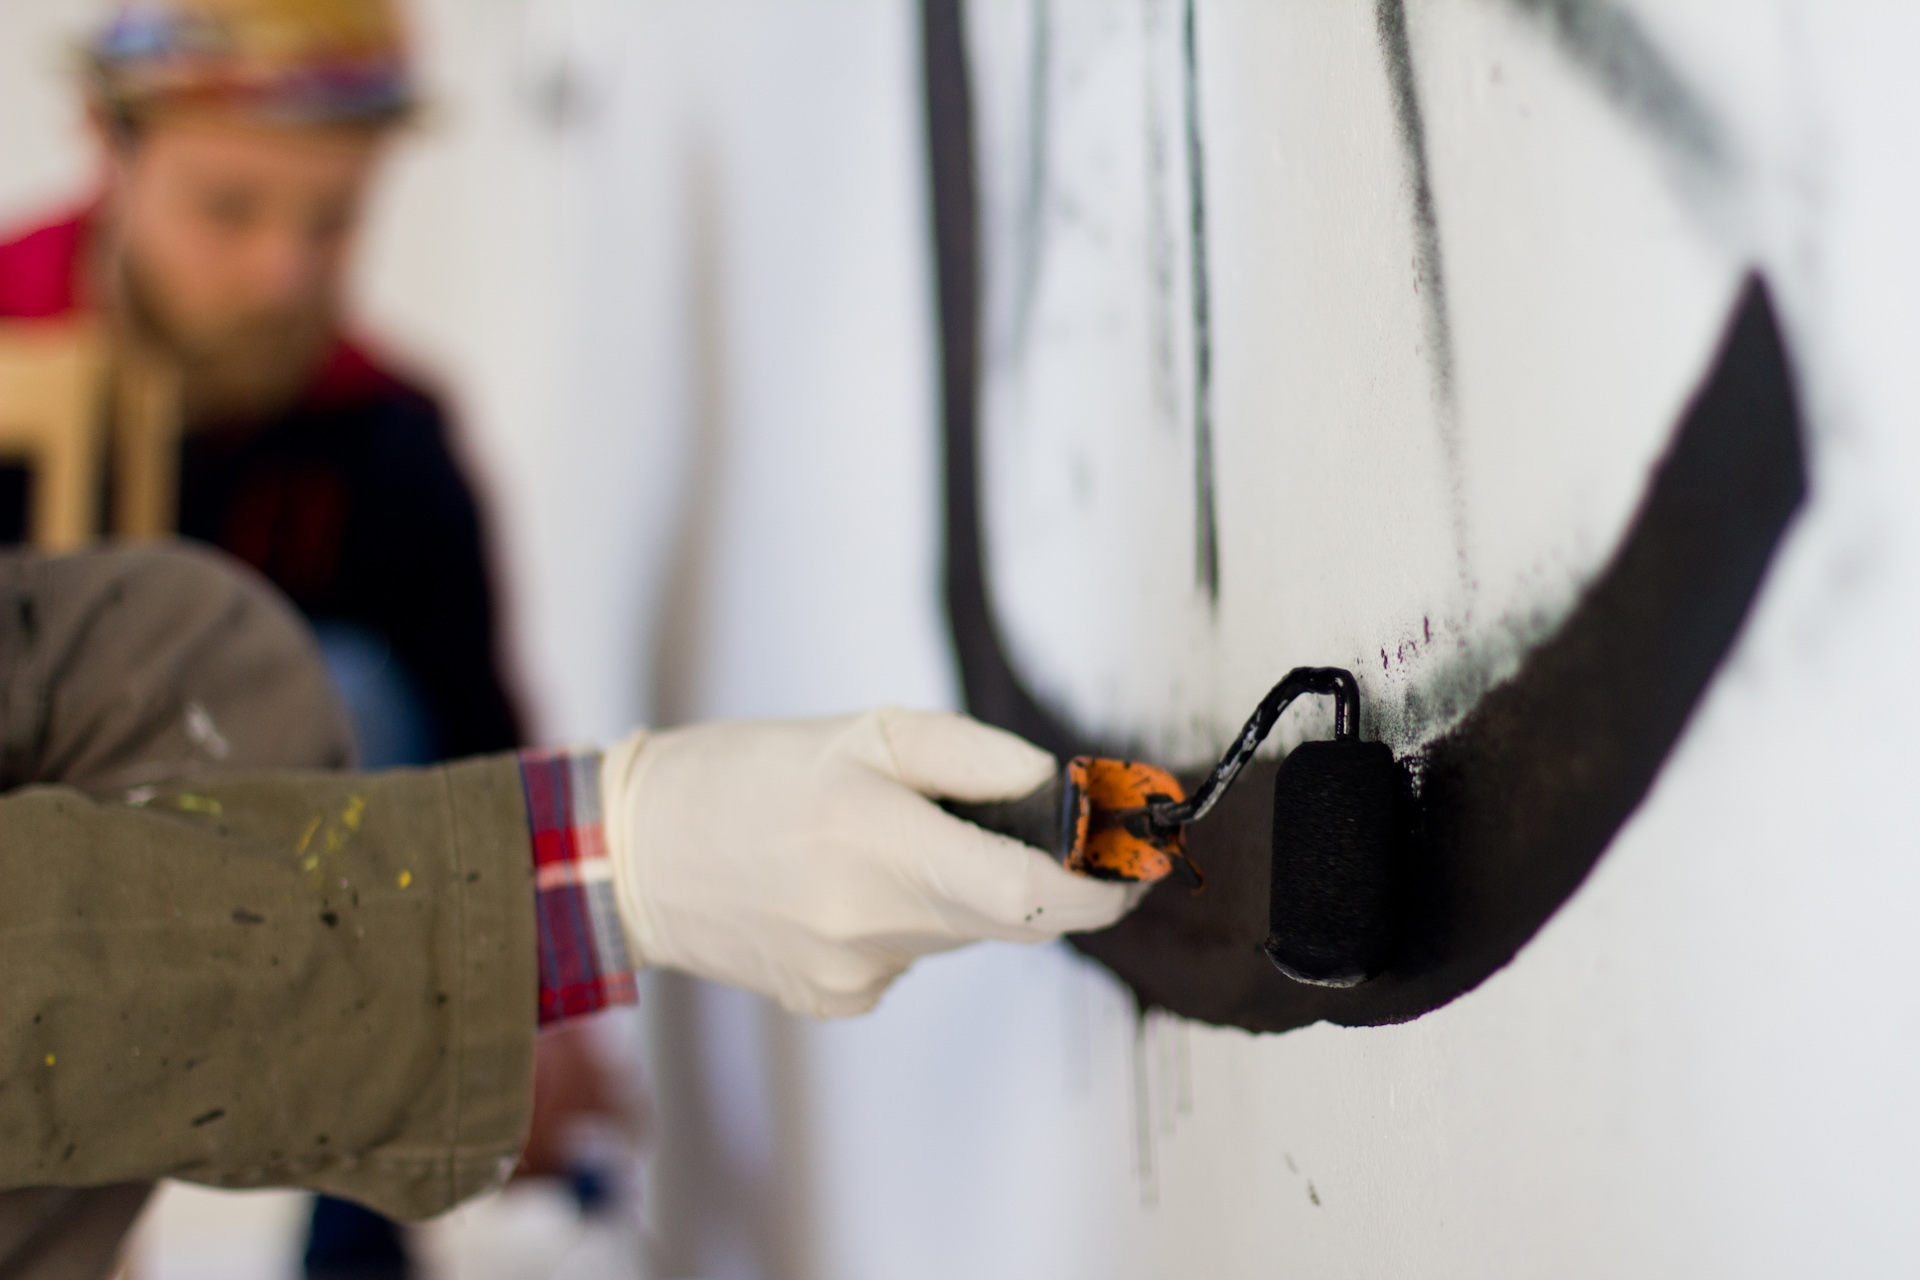 luca-font-show-at-bonobolabo-and-wall-painting-with-basik-09